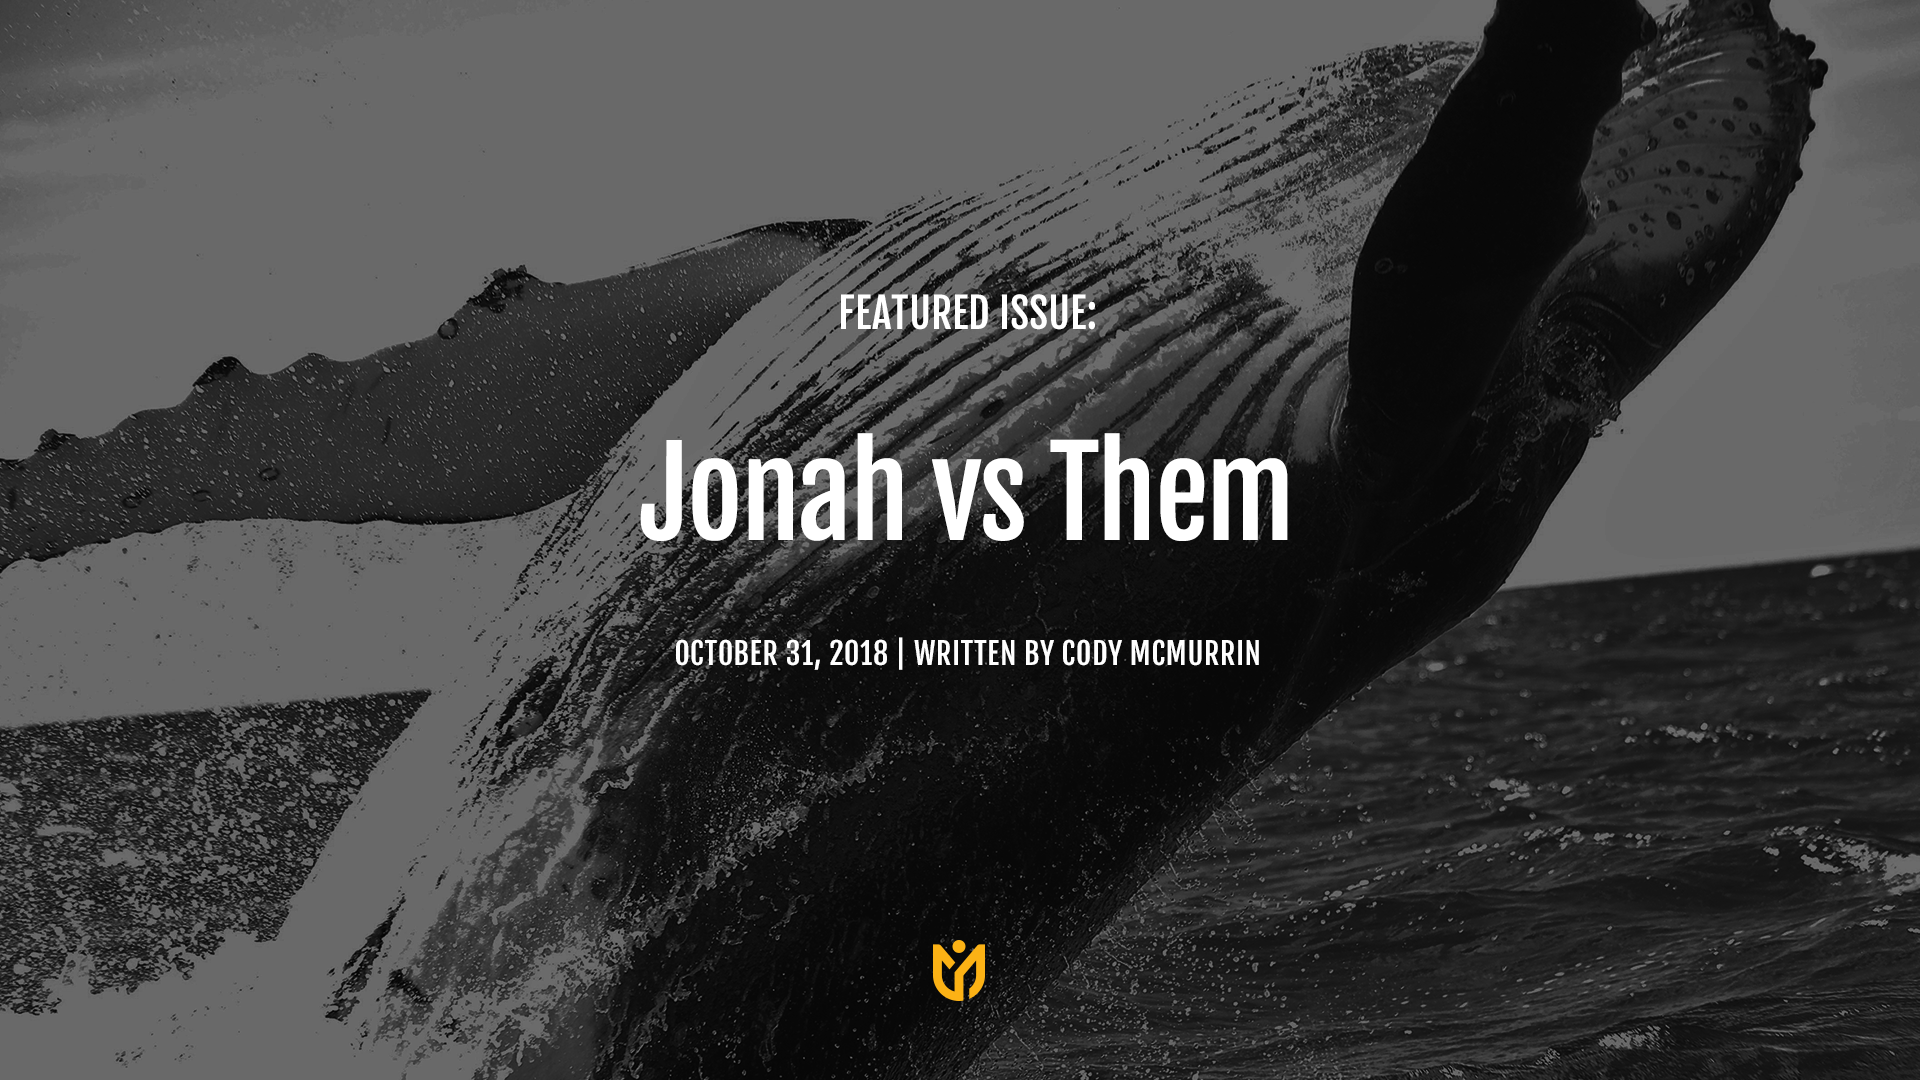 jonah feature.png